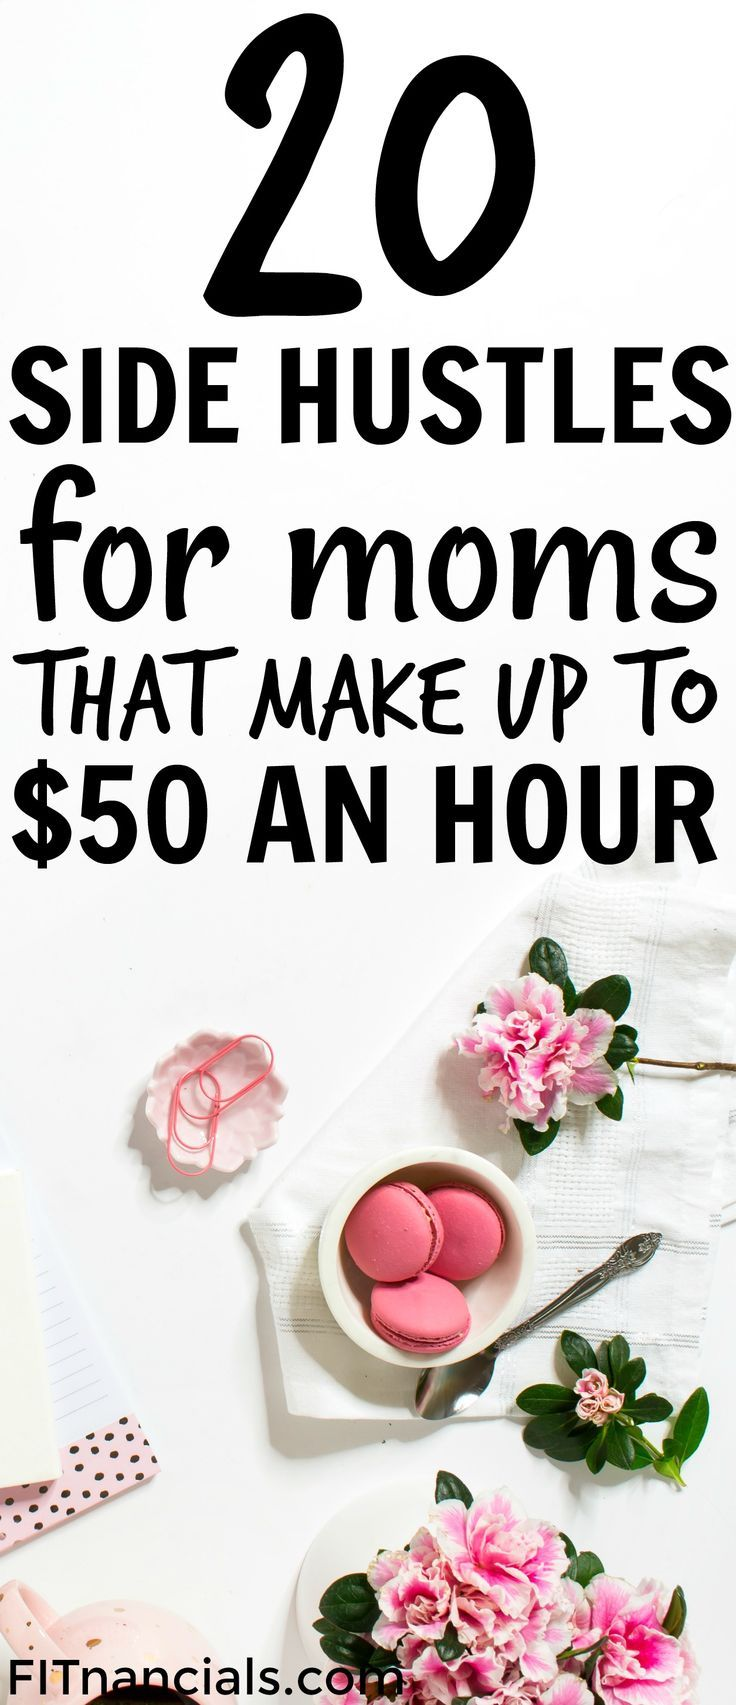 20 Side Hustles Perfect For Stay At Home Moms | Pinterest | Hustle ...